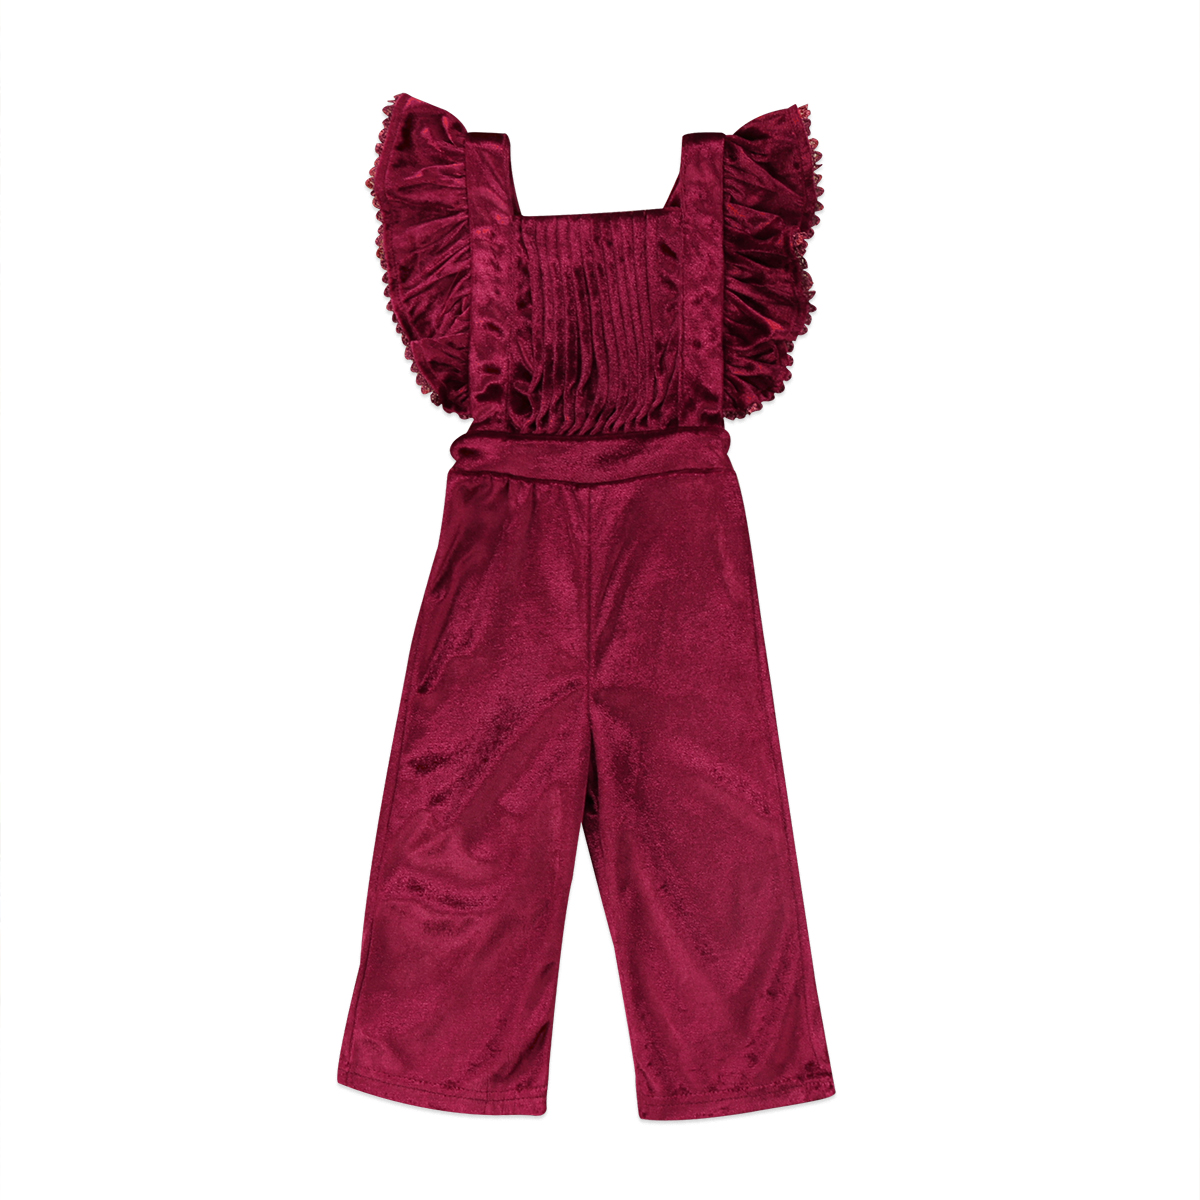 Toddler Kids Girls Clothing Rompers Velvet Bib Short Sleeve Backless Jumpsuit Outfit Clothes Girl